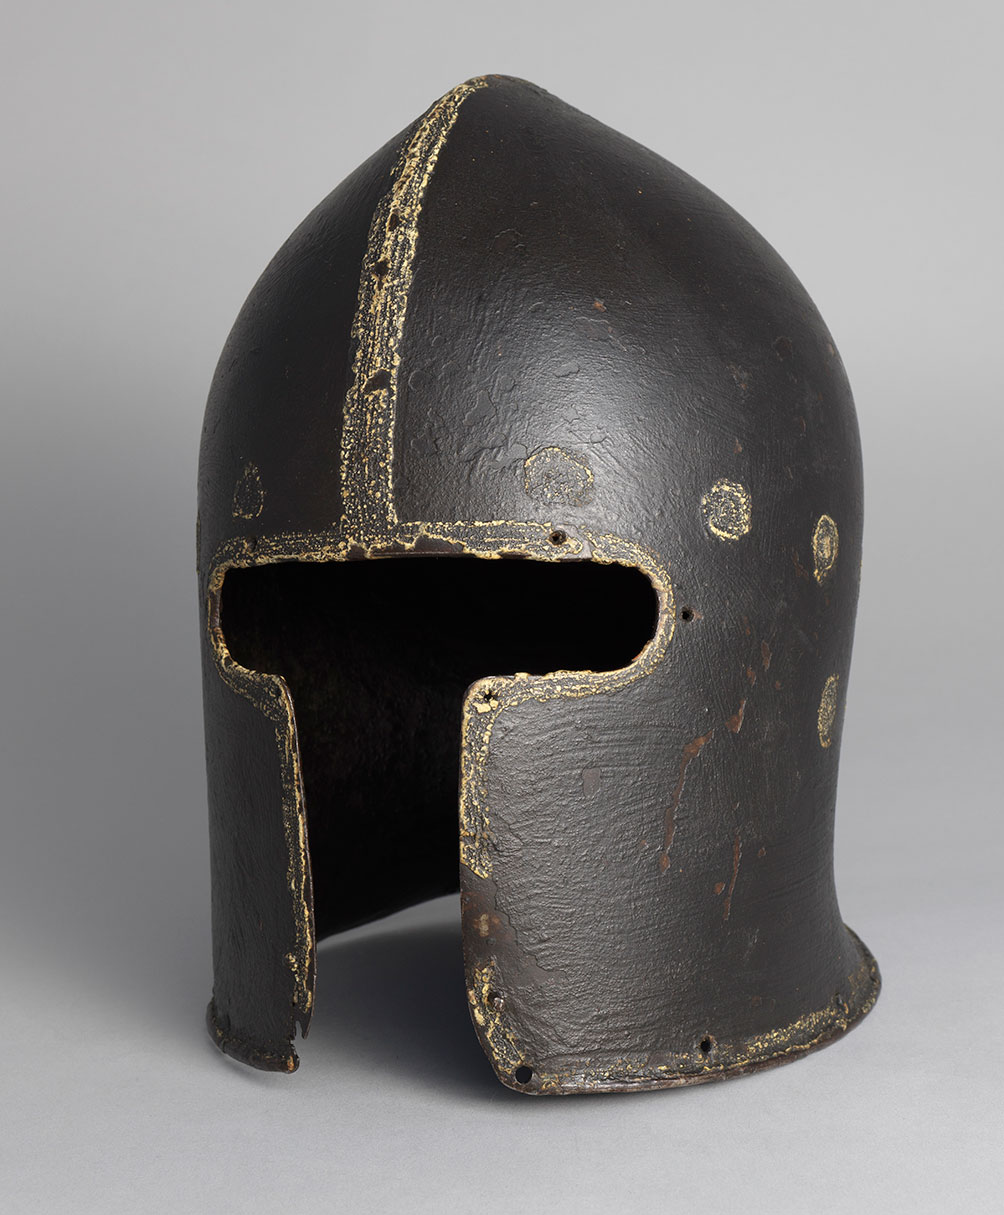 Sallet Unknown Artist Maker Milan Italy Date C 1455 The Wallace Collection